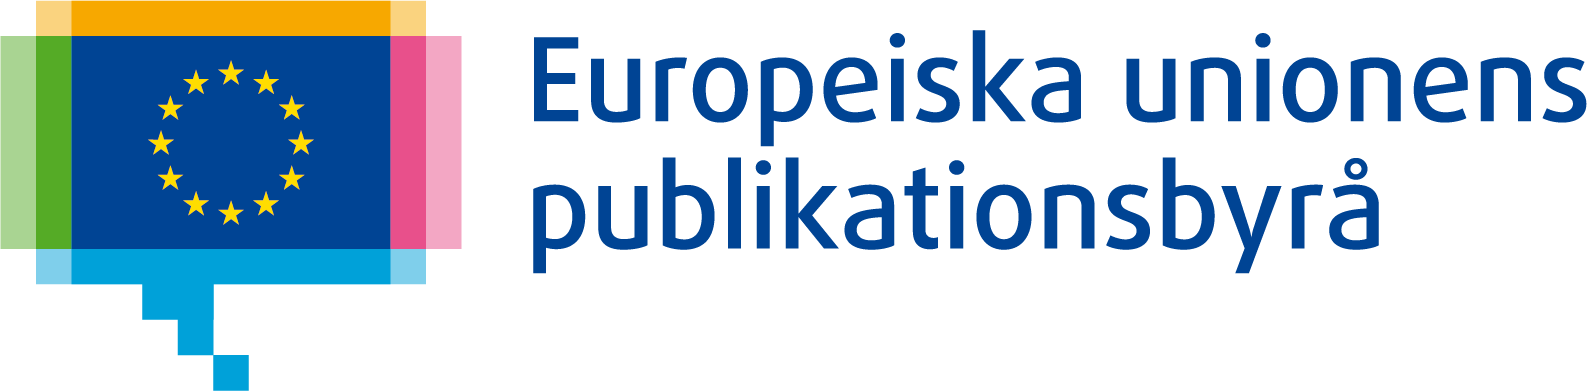 Photo of EU:s publikationsbyrå